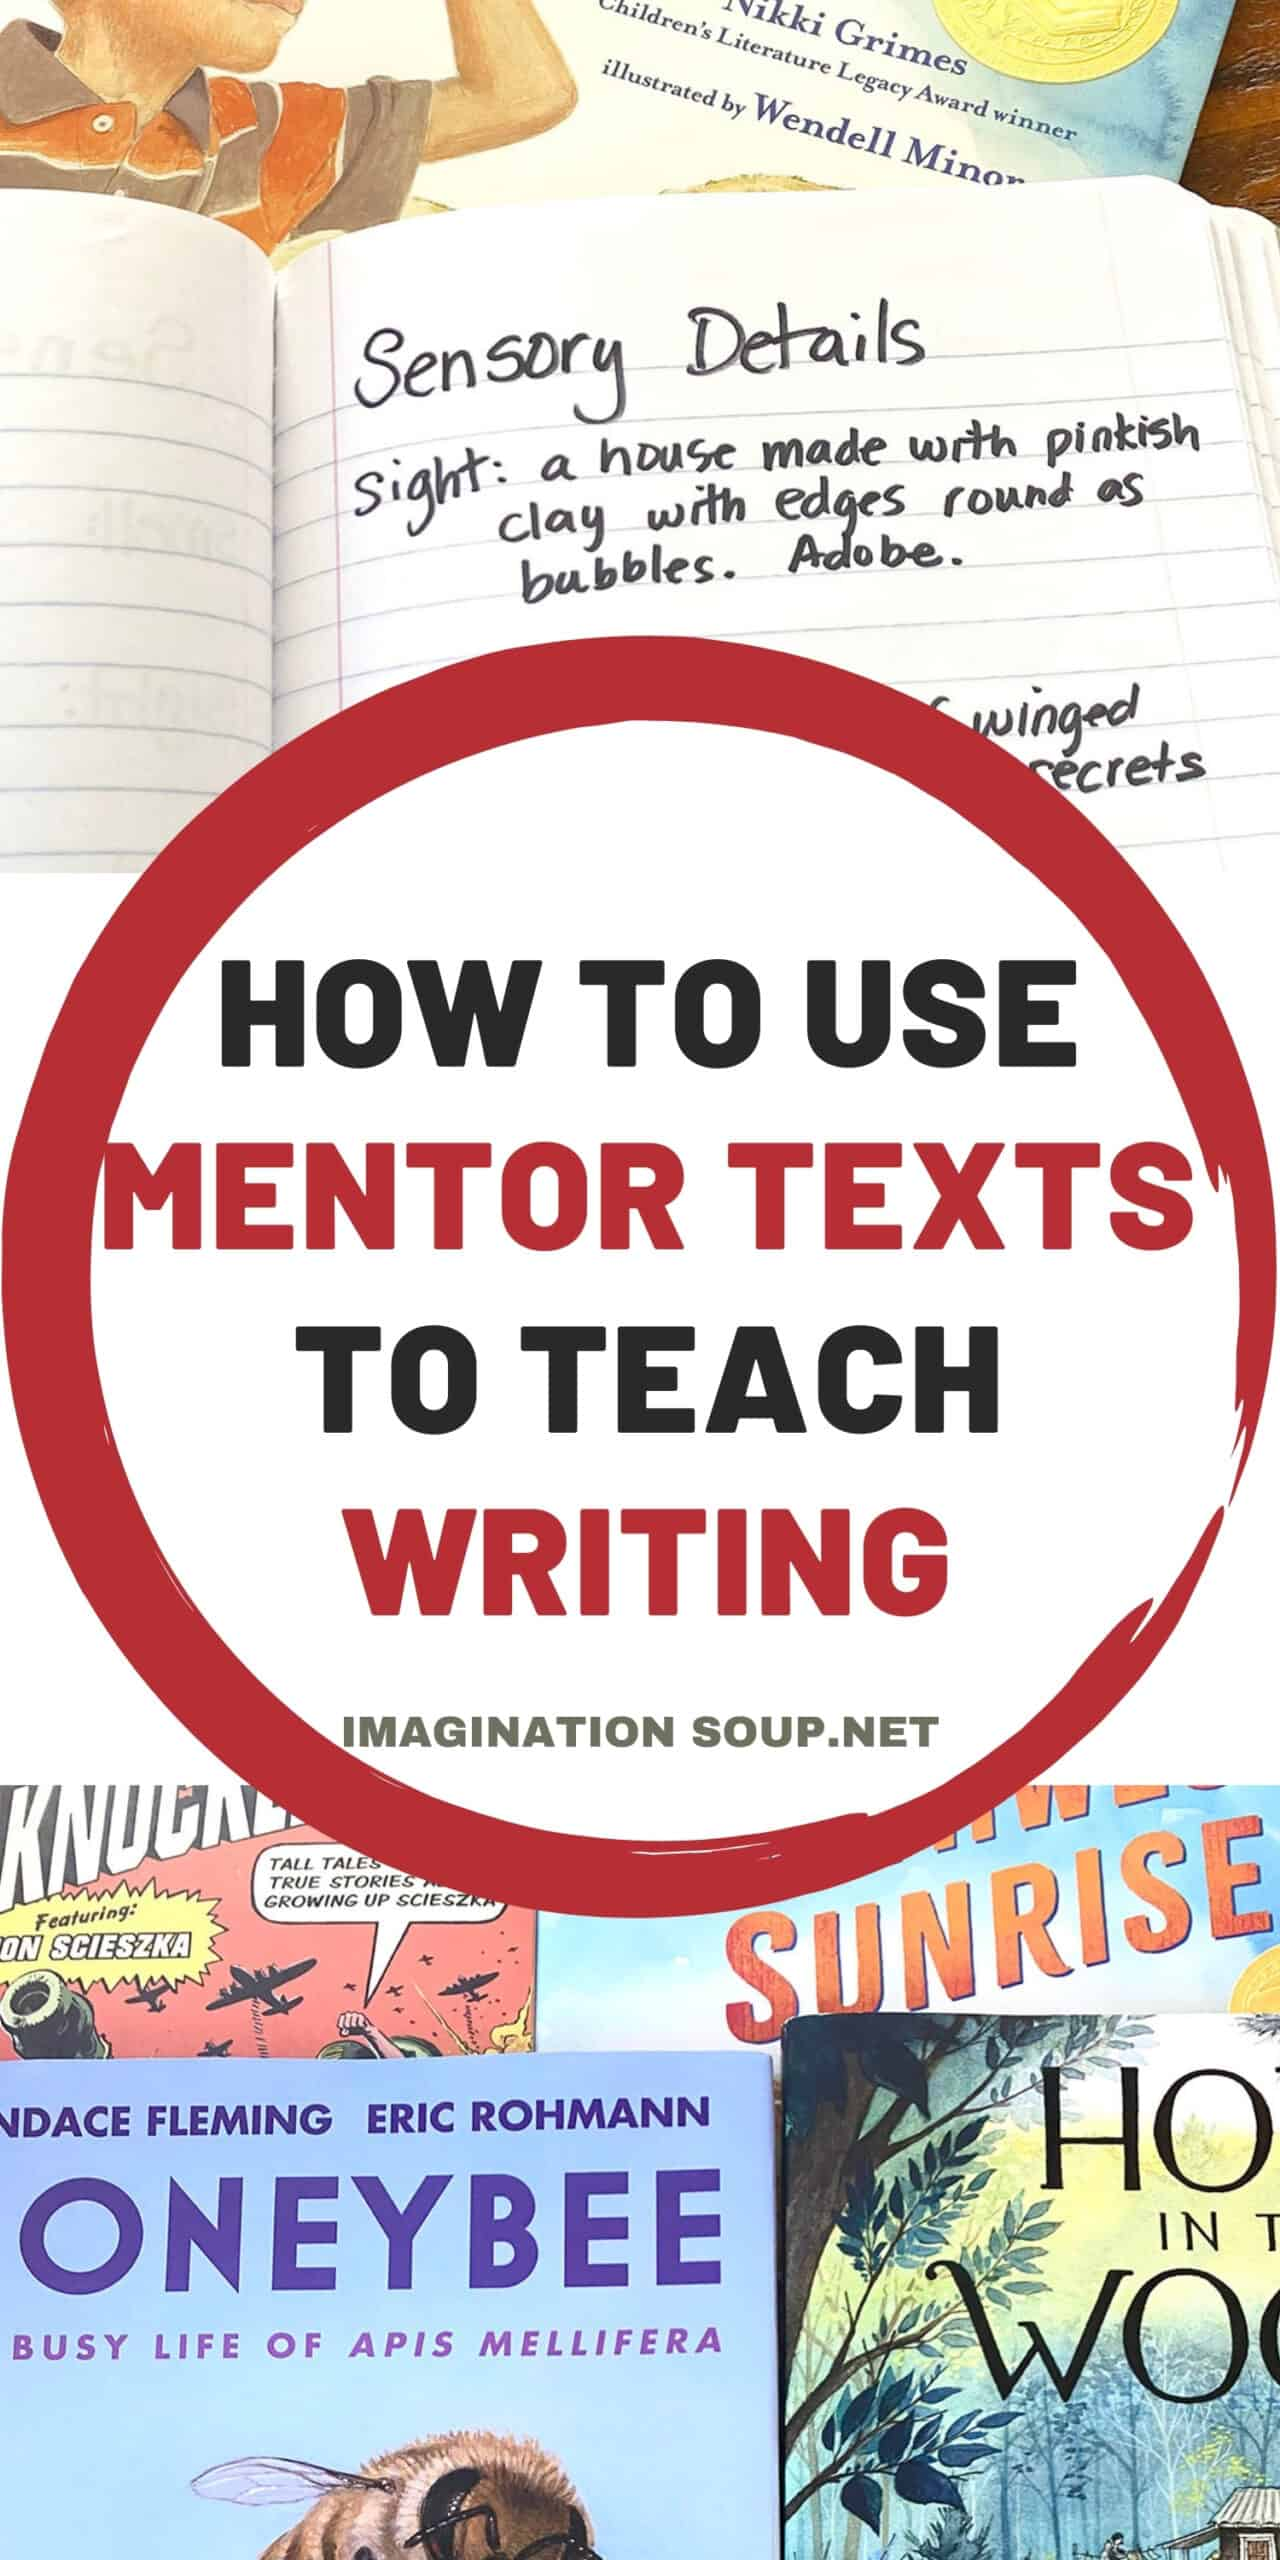 How to Use Mentor Texts to Teach Writing